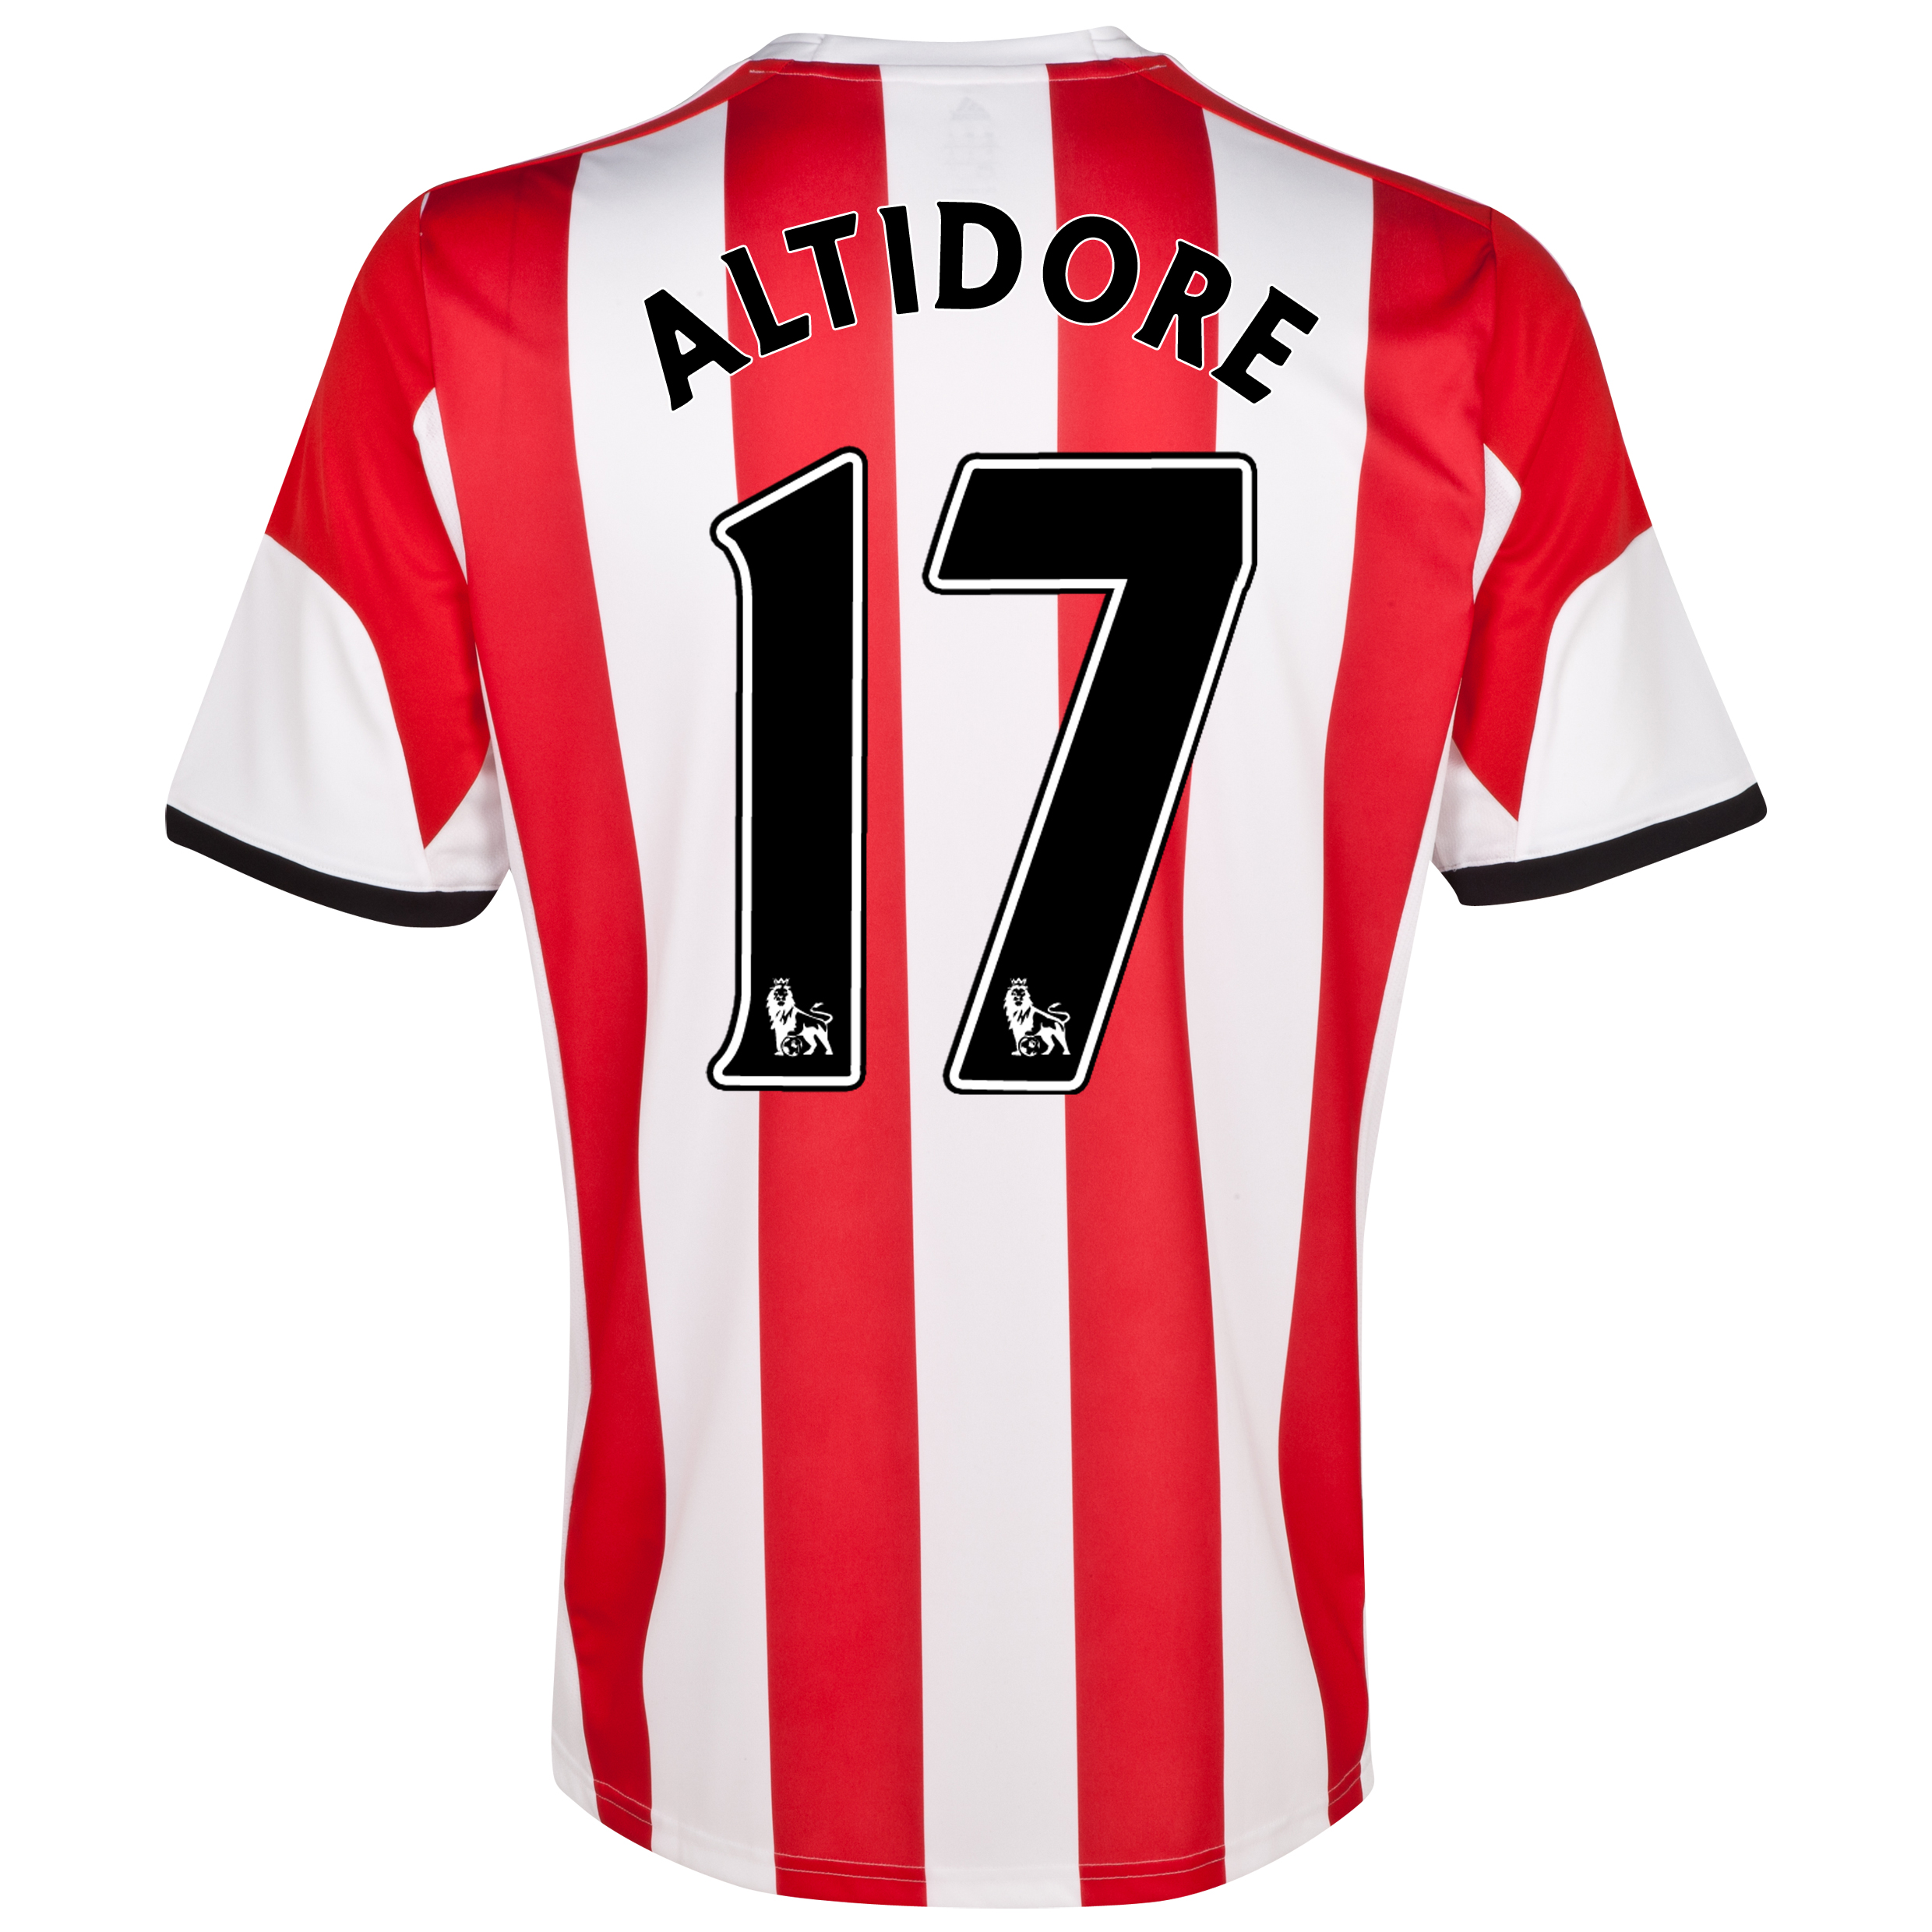 Sunderland Home Shirt 2013/14 with Altidore 17 printing